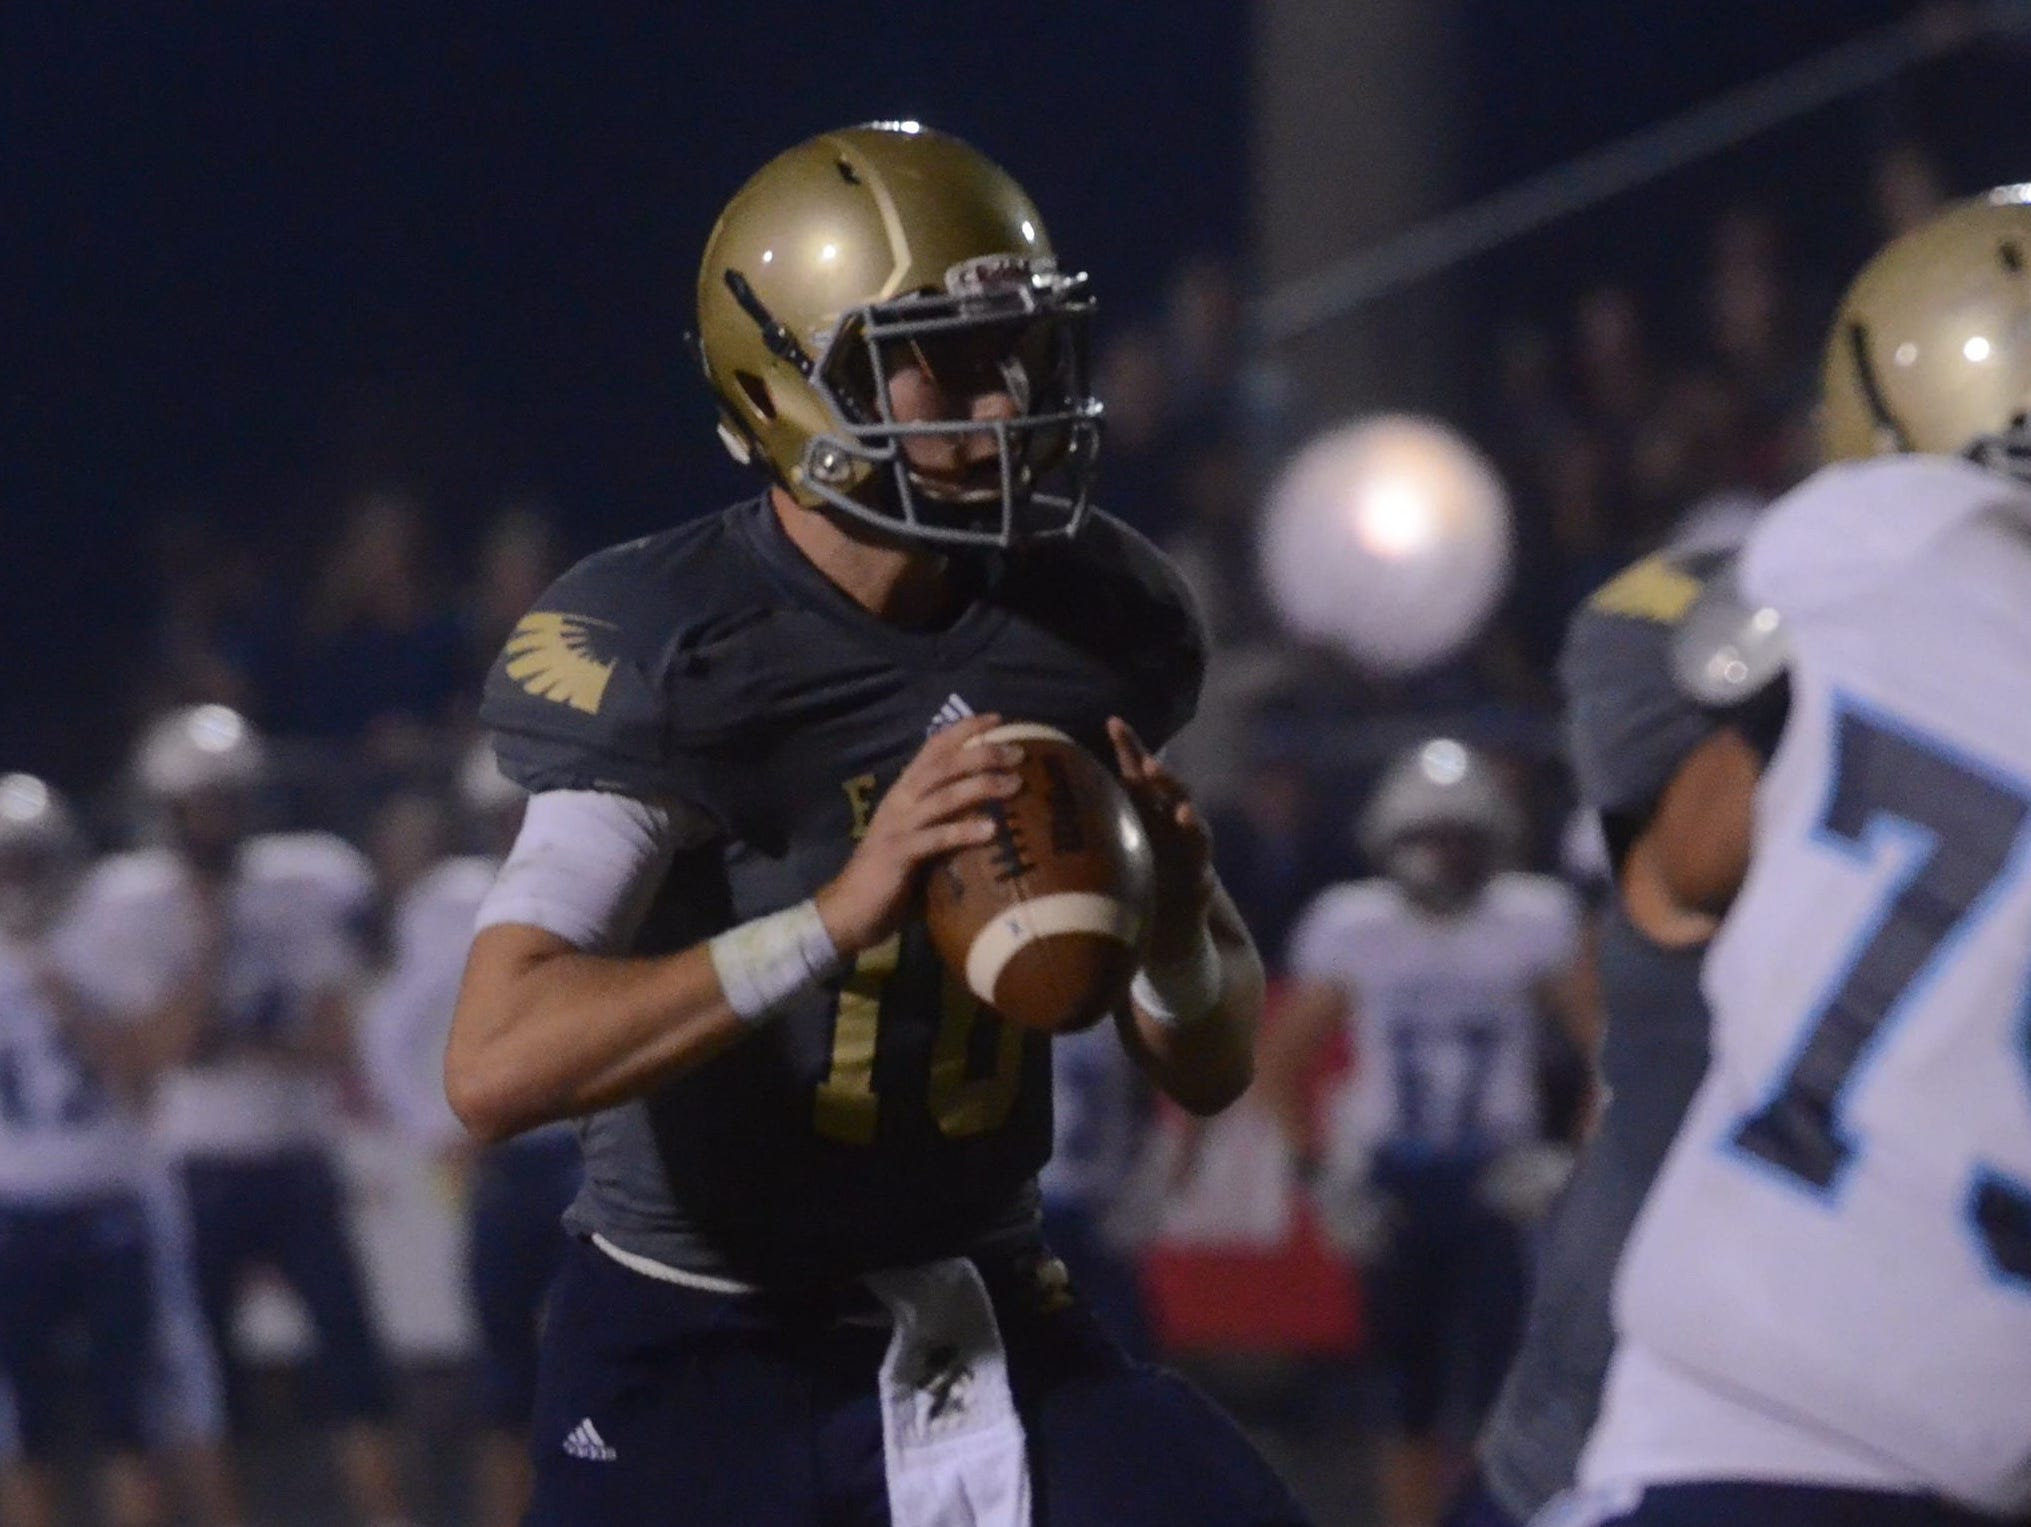 Independence senior quarterback Andrew Bunch (10) scans the field during Friday's Class 5A semifinal against Centennial.